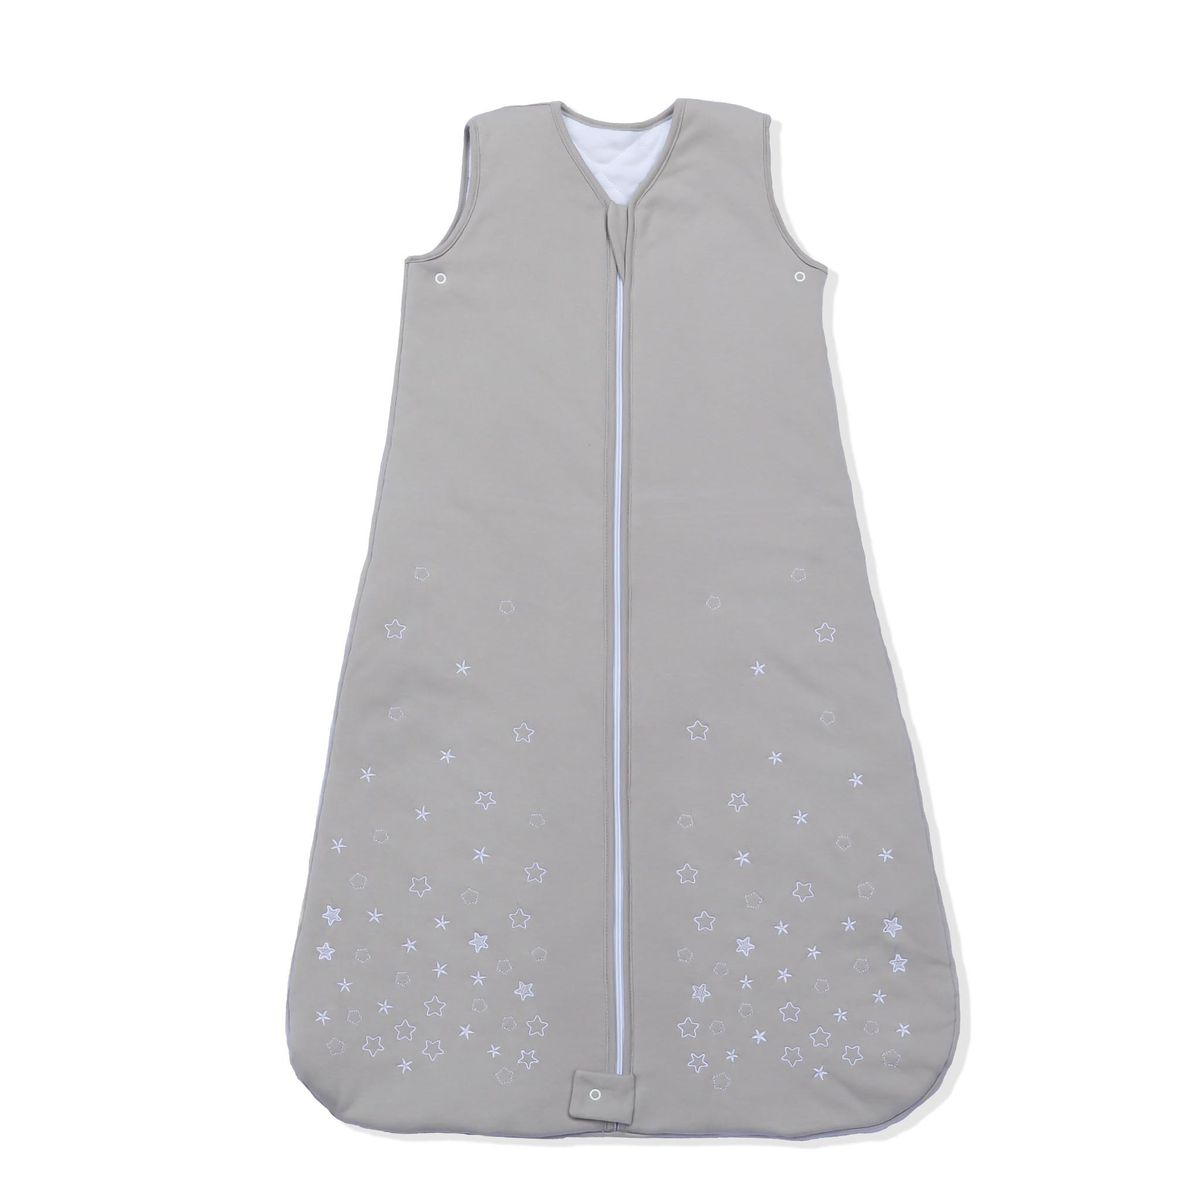 Babes And Kids 100 Cotton Grey Winter Baby Sleeping Bag